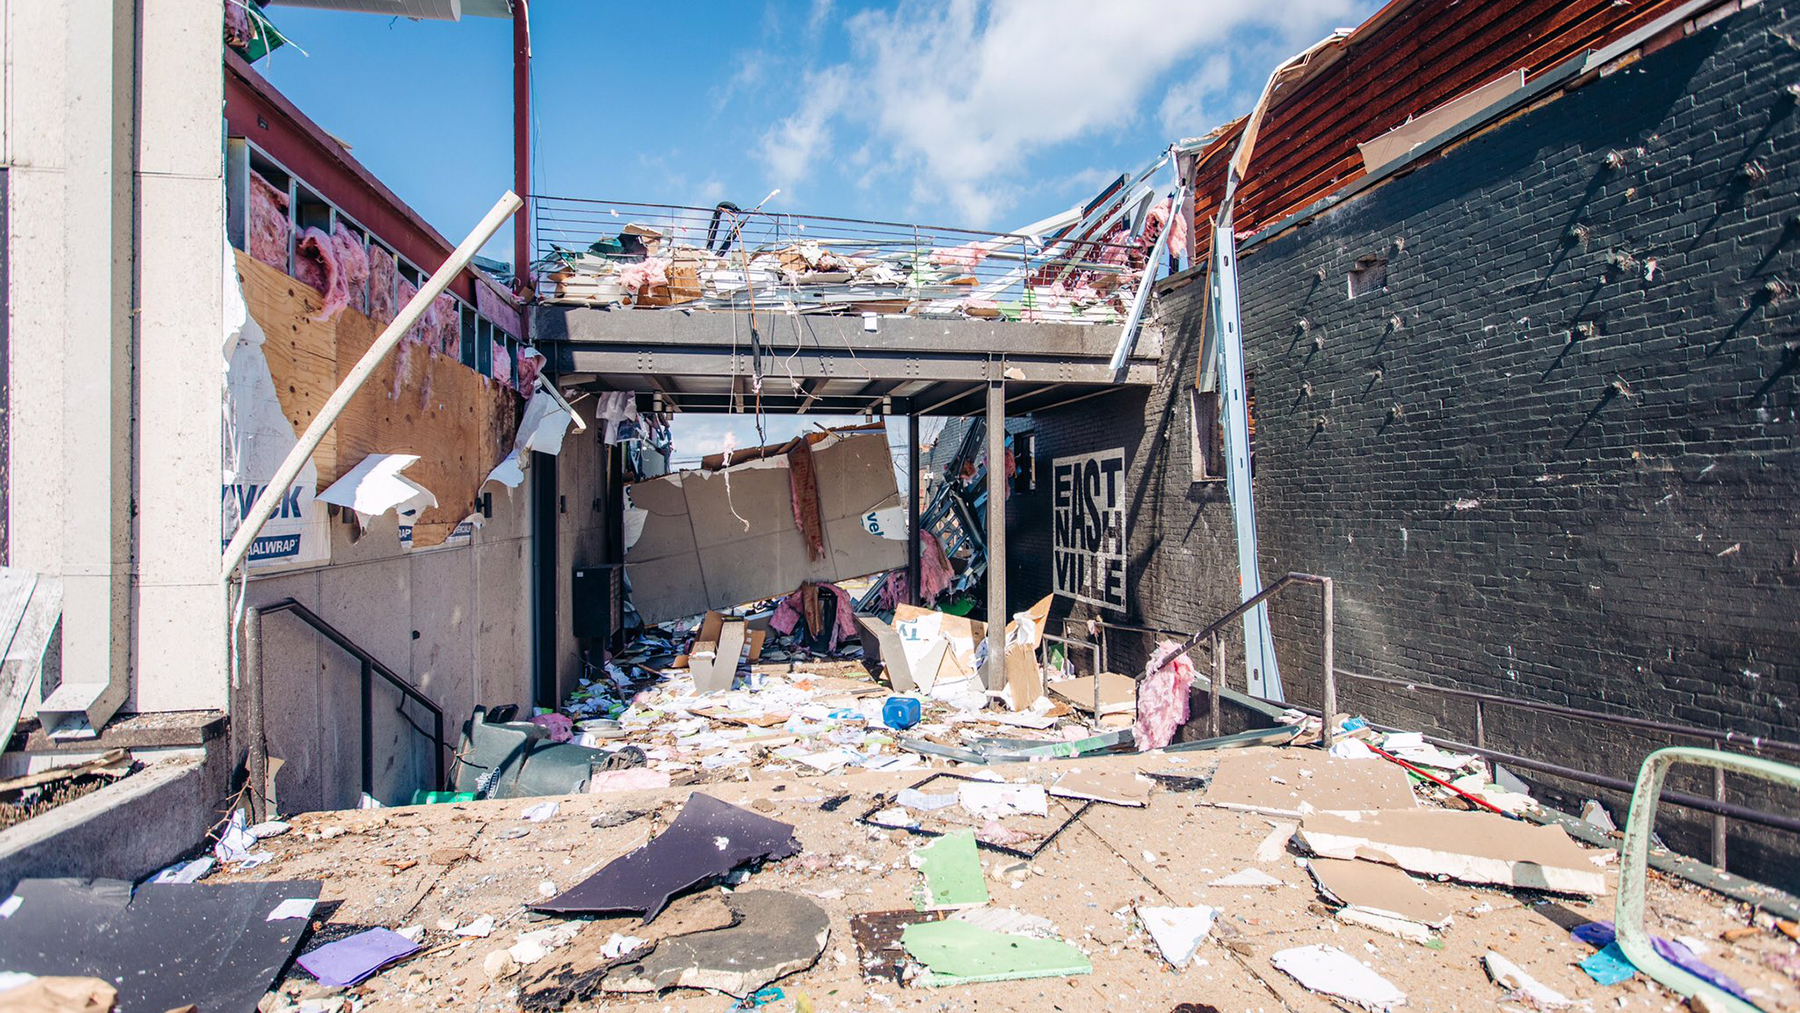 Damage from this week's tornado as seen in East Nashville. (City of Nashville photo)